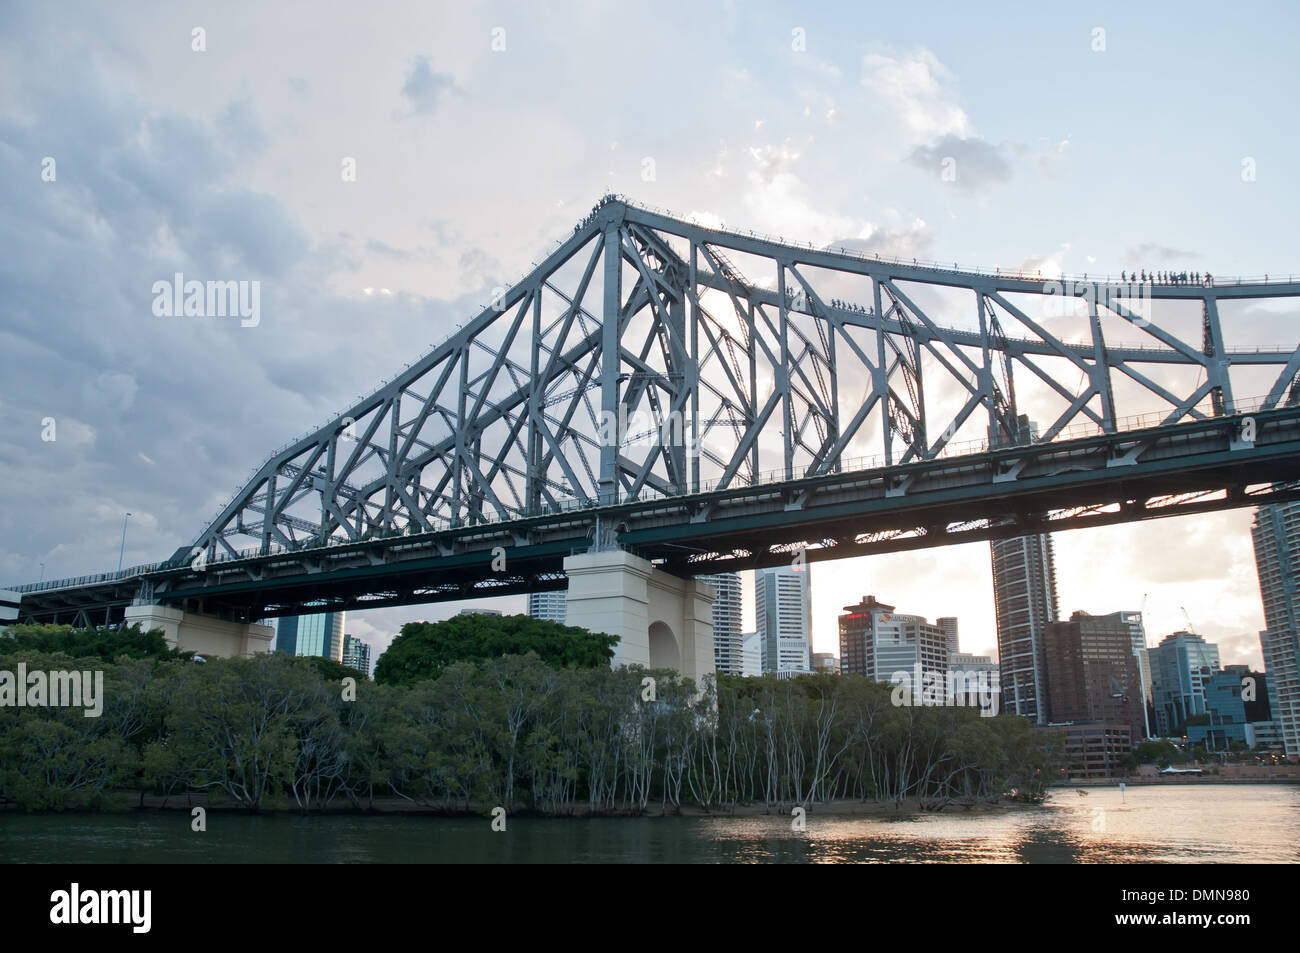 Story Bridge in early morning near Kangaroo point lookout Queensland Australia - Stock Image